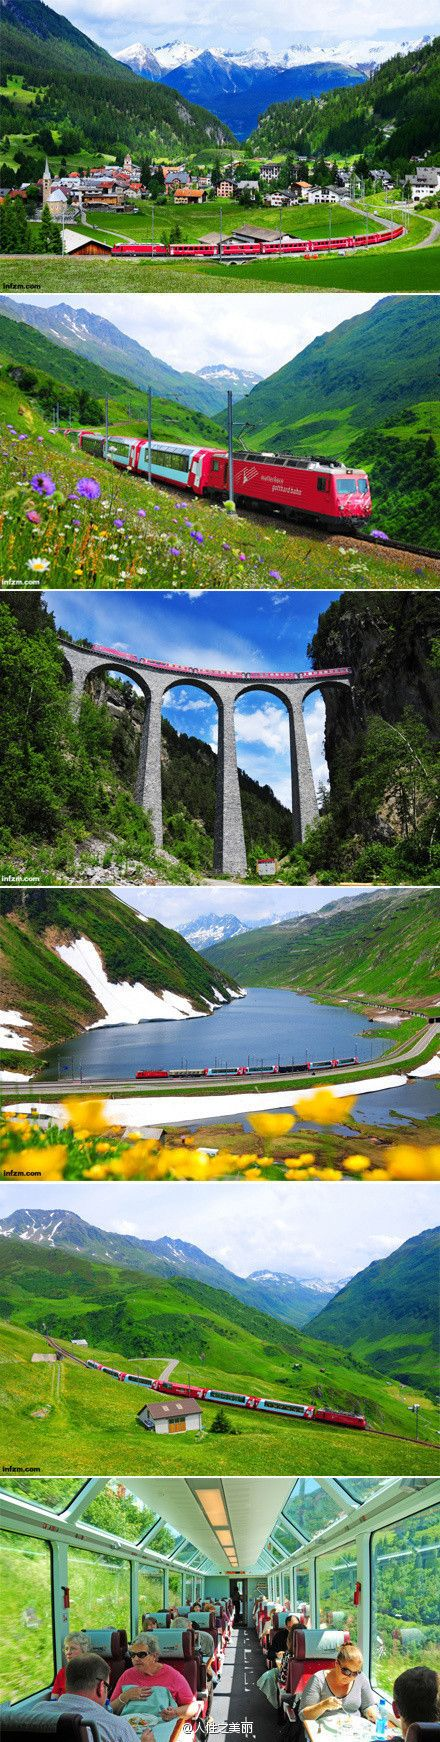 The Glacier Express travels from Zermatt to Davos or St. Moritz in around 7 hours via 91 tunnels and across 291 bridges.